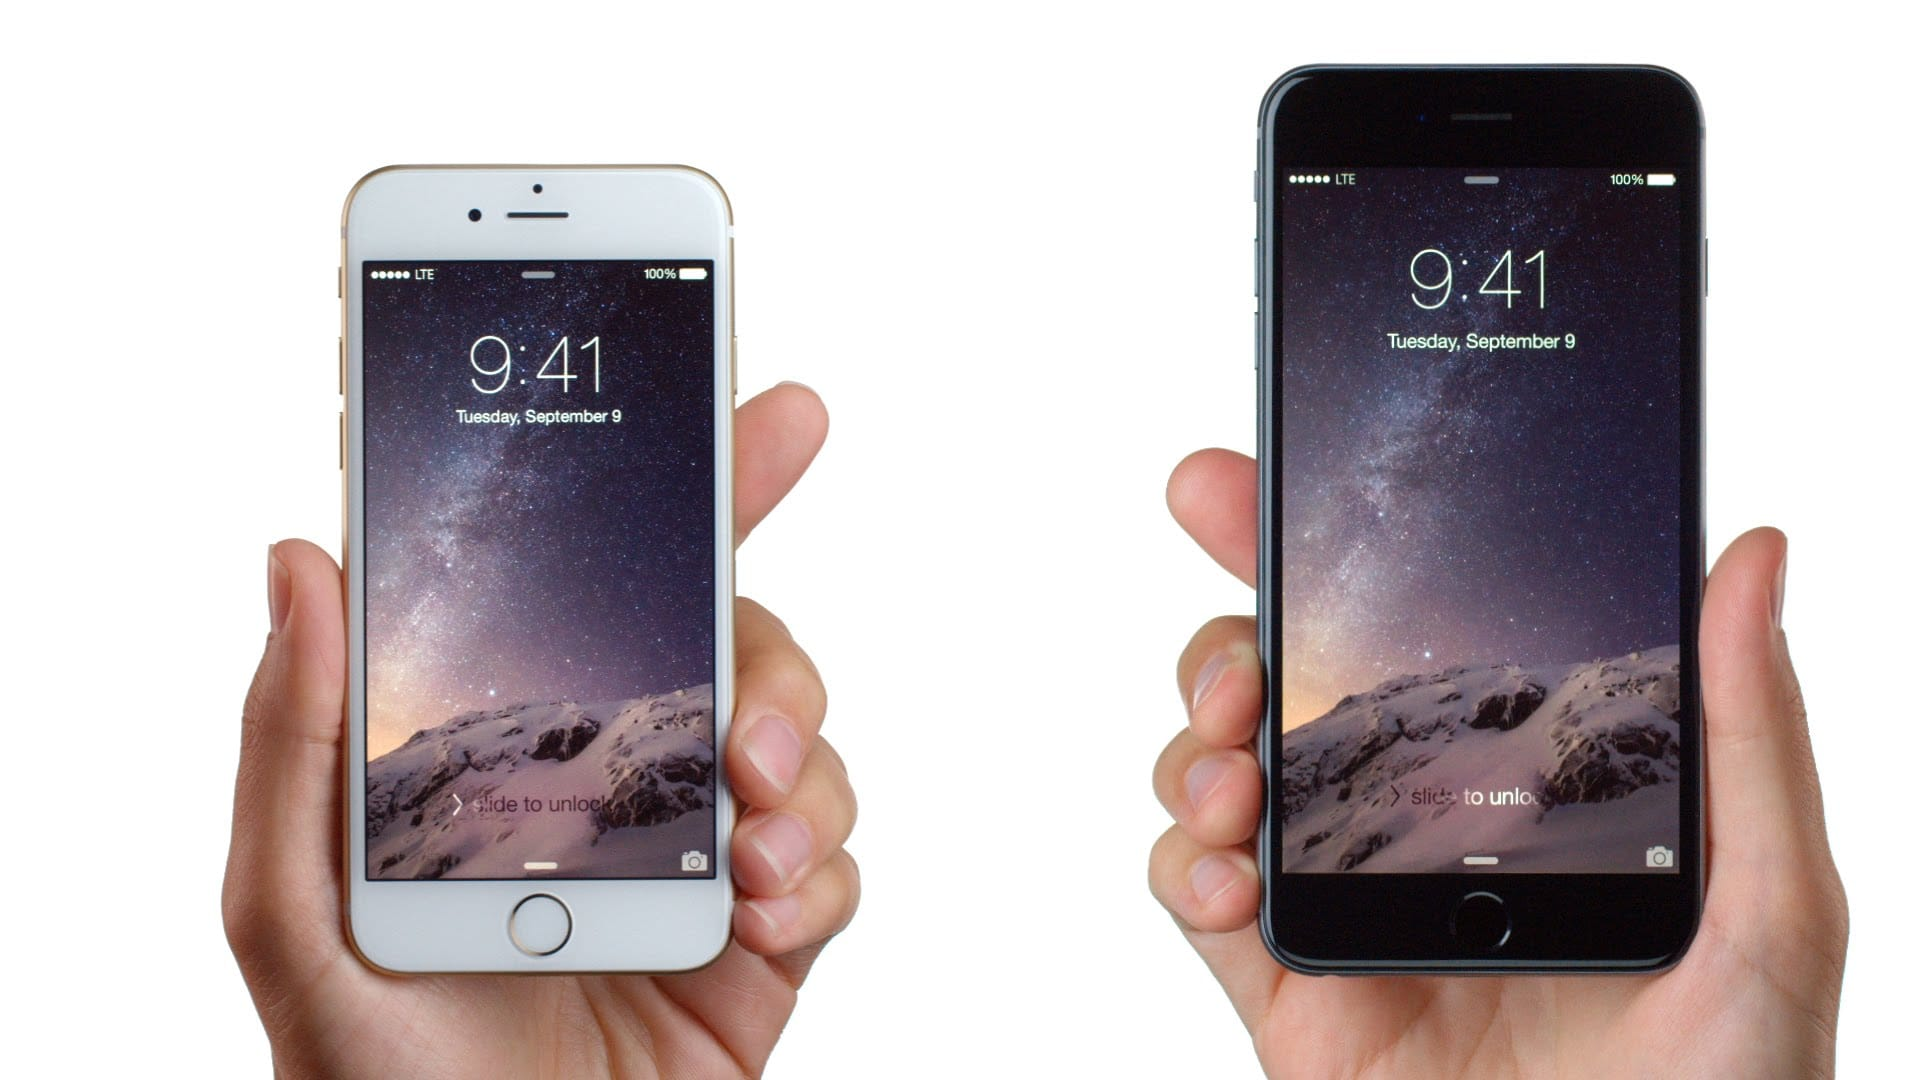 iPhone 6 / iPhone 6 plus